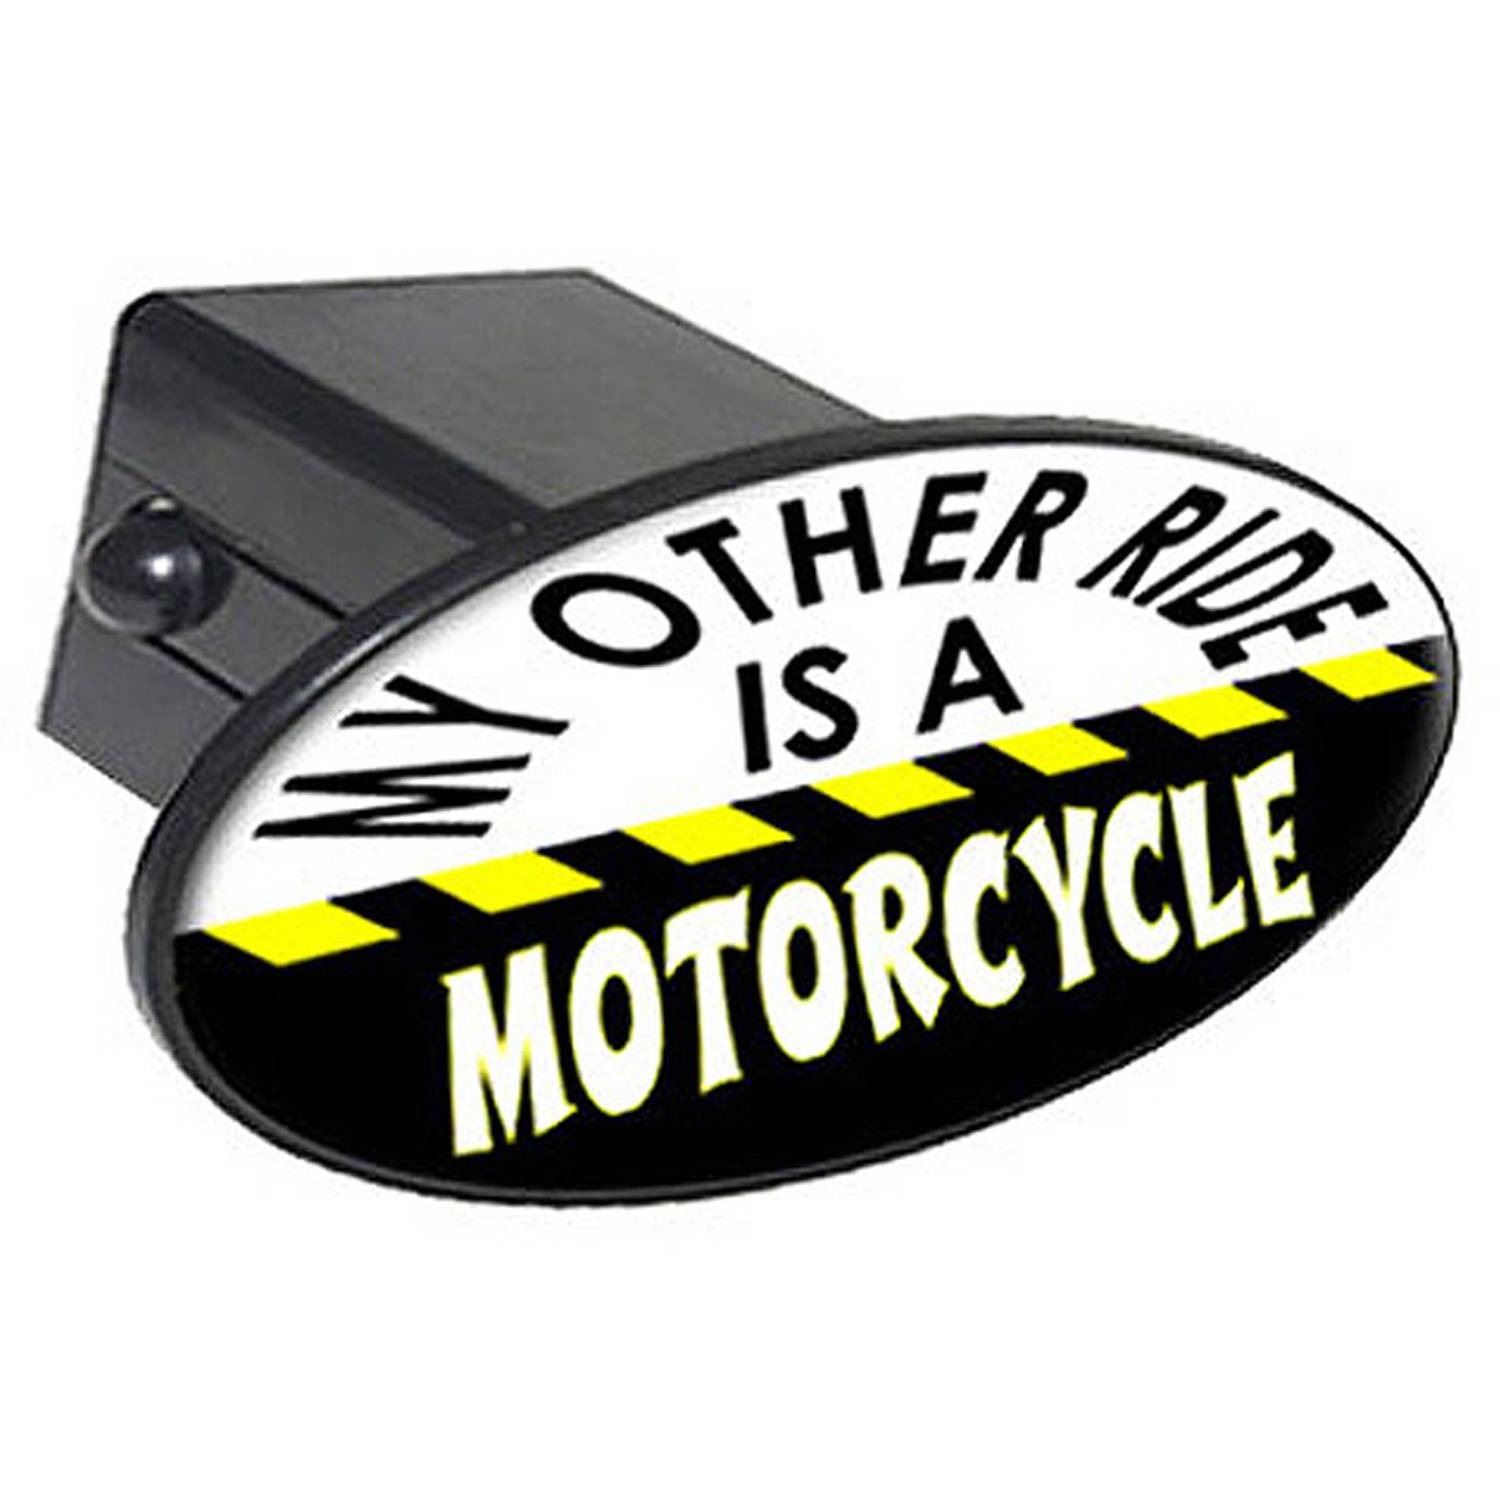 "My Other Ride Is A Motorcycle 2"" Oval Tow Trailer Hitch Cover Plug Insert"